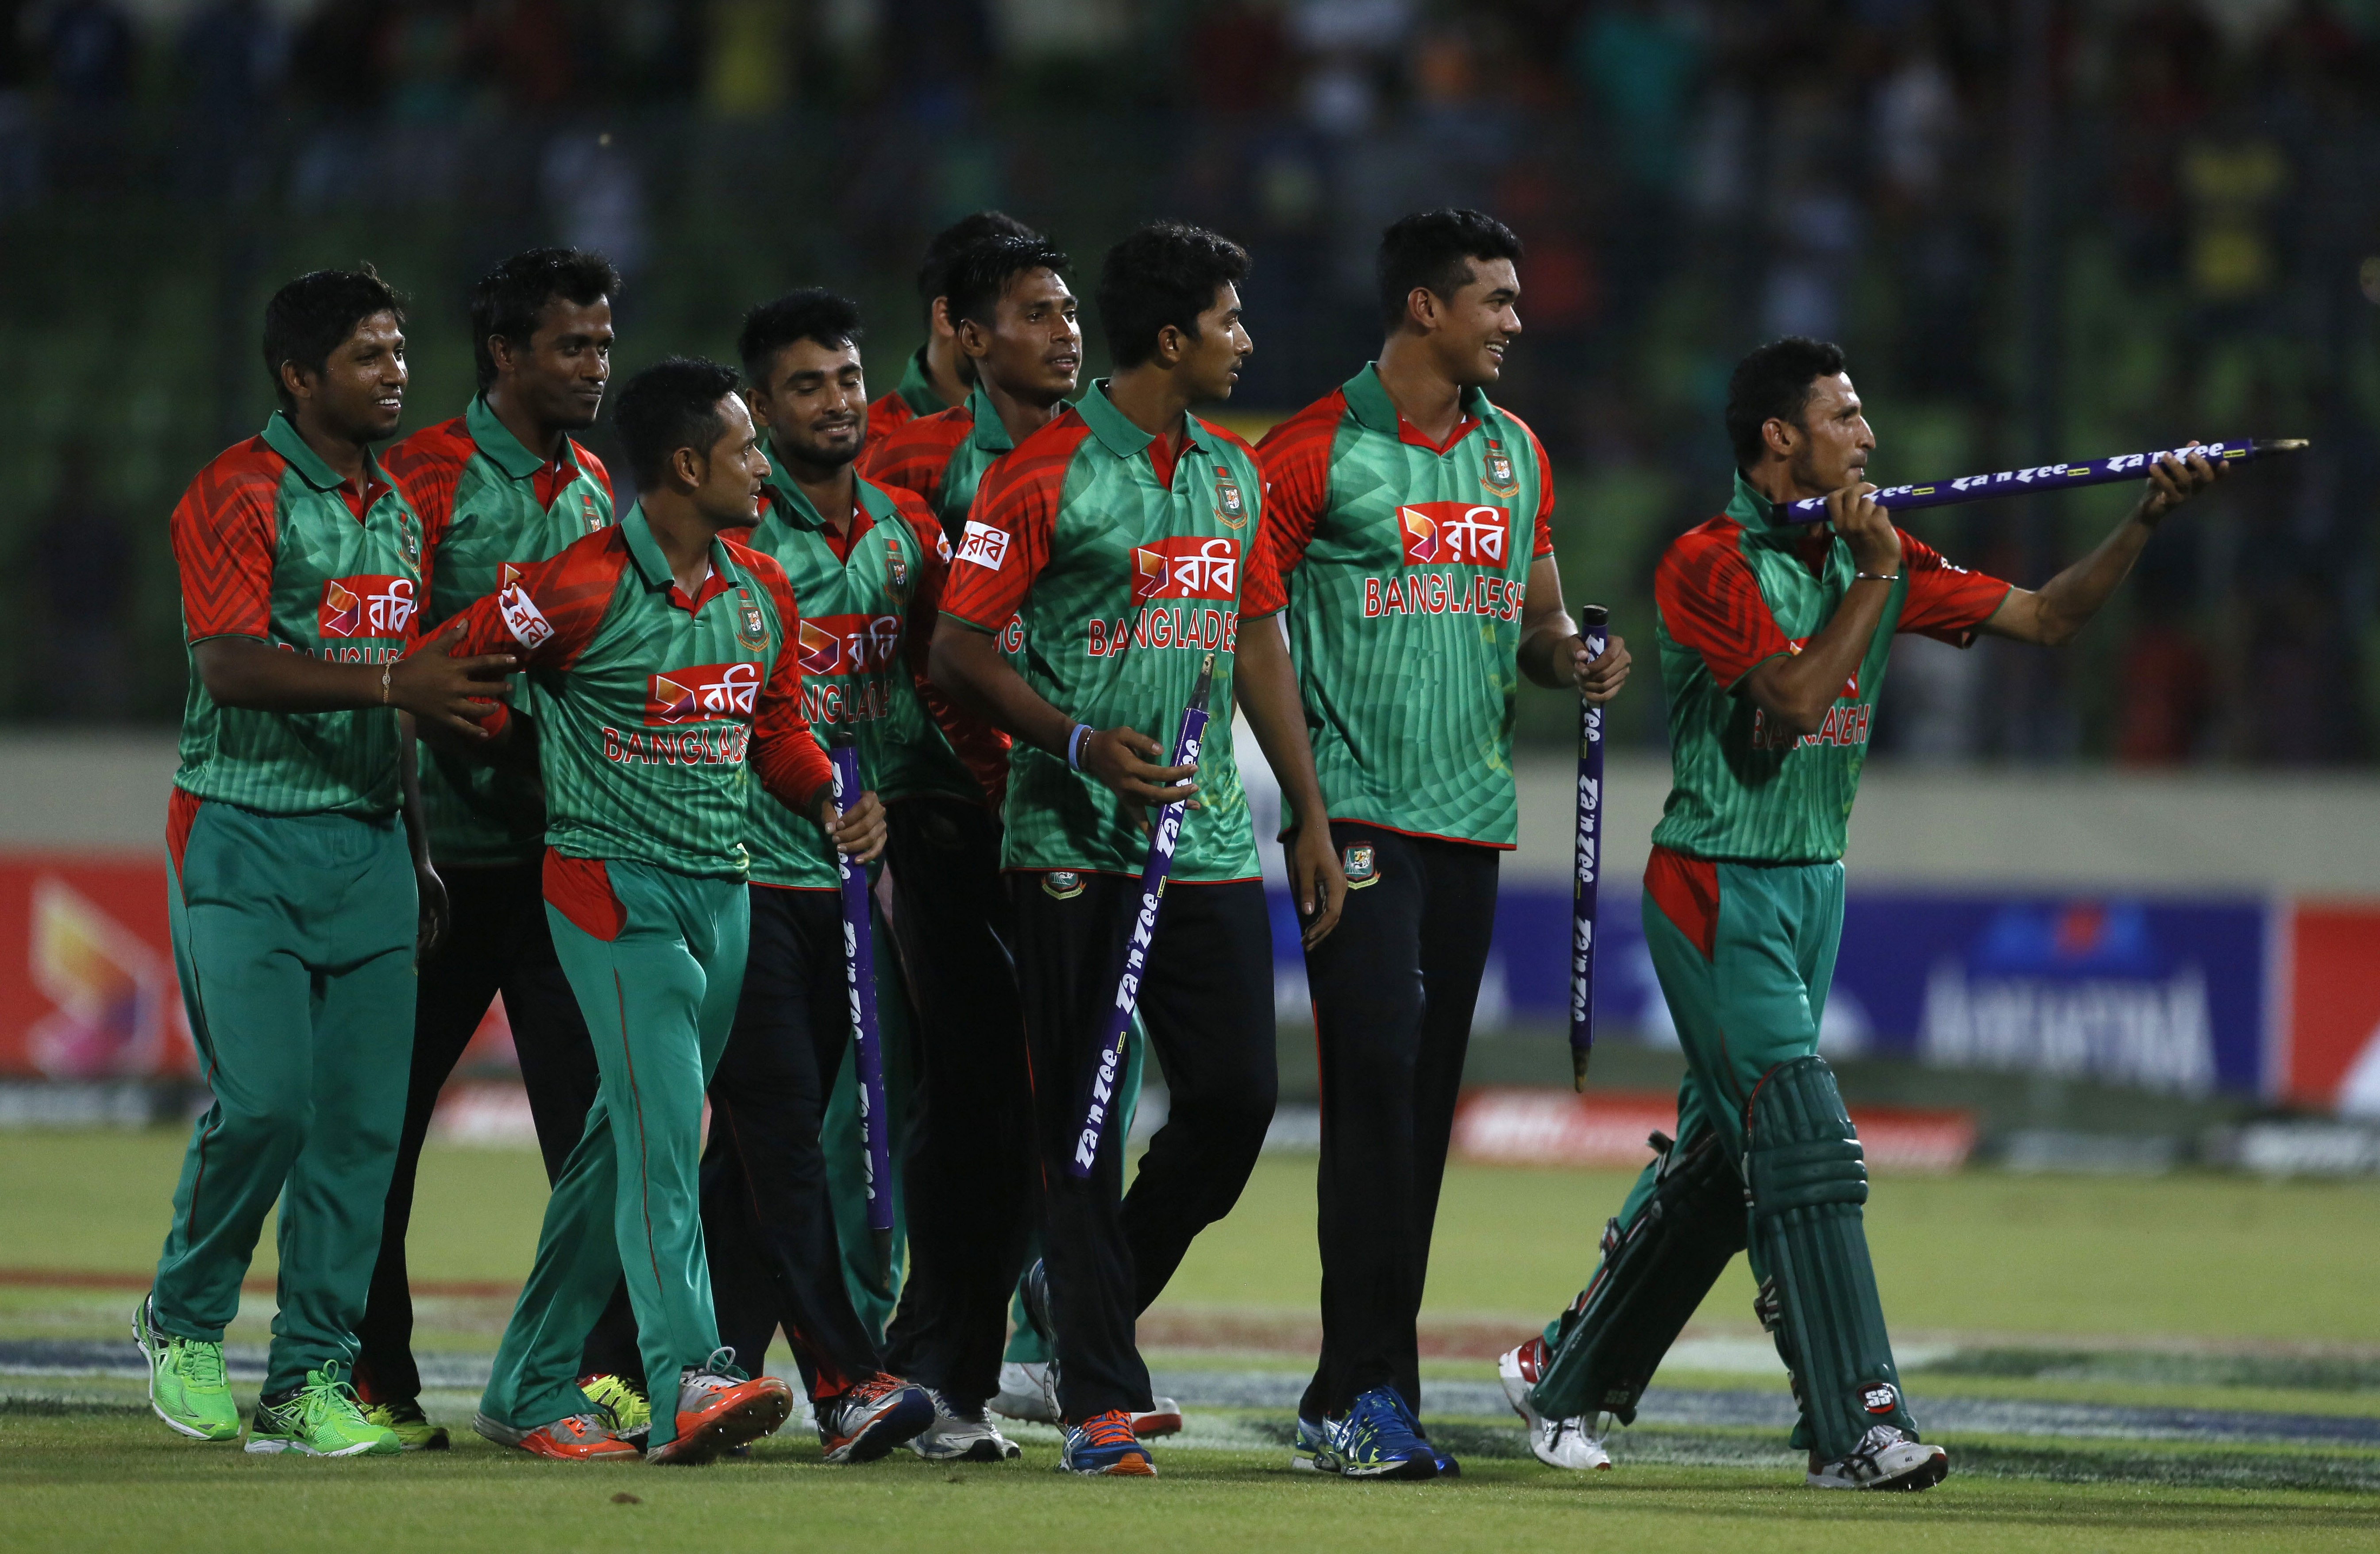 Indian Cricket Team To Tour Bangladesh: India's Hour Of Shame: Why And How Much-idolised Cricket